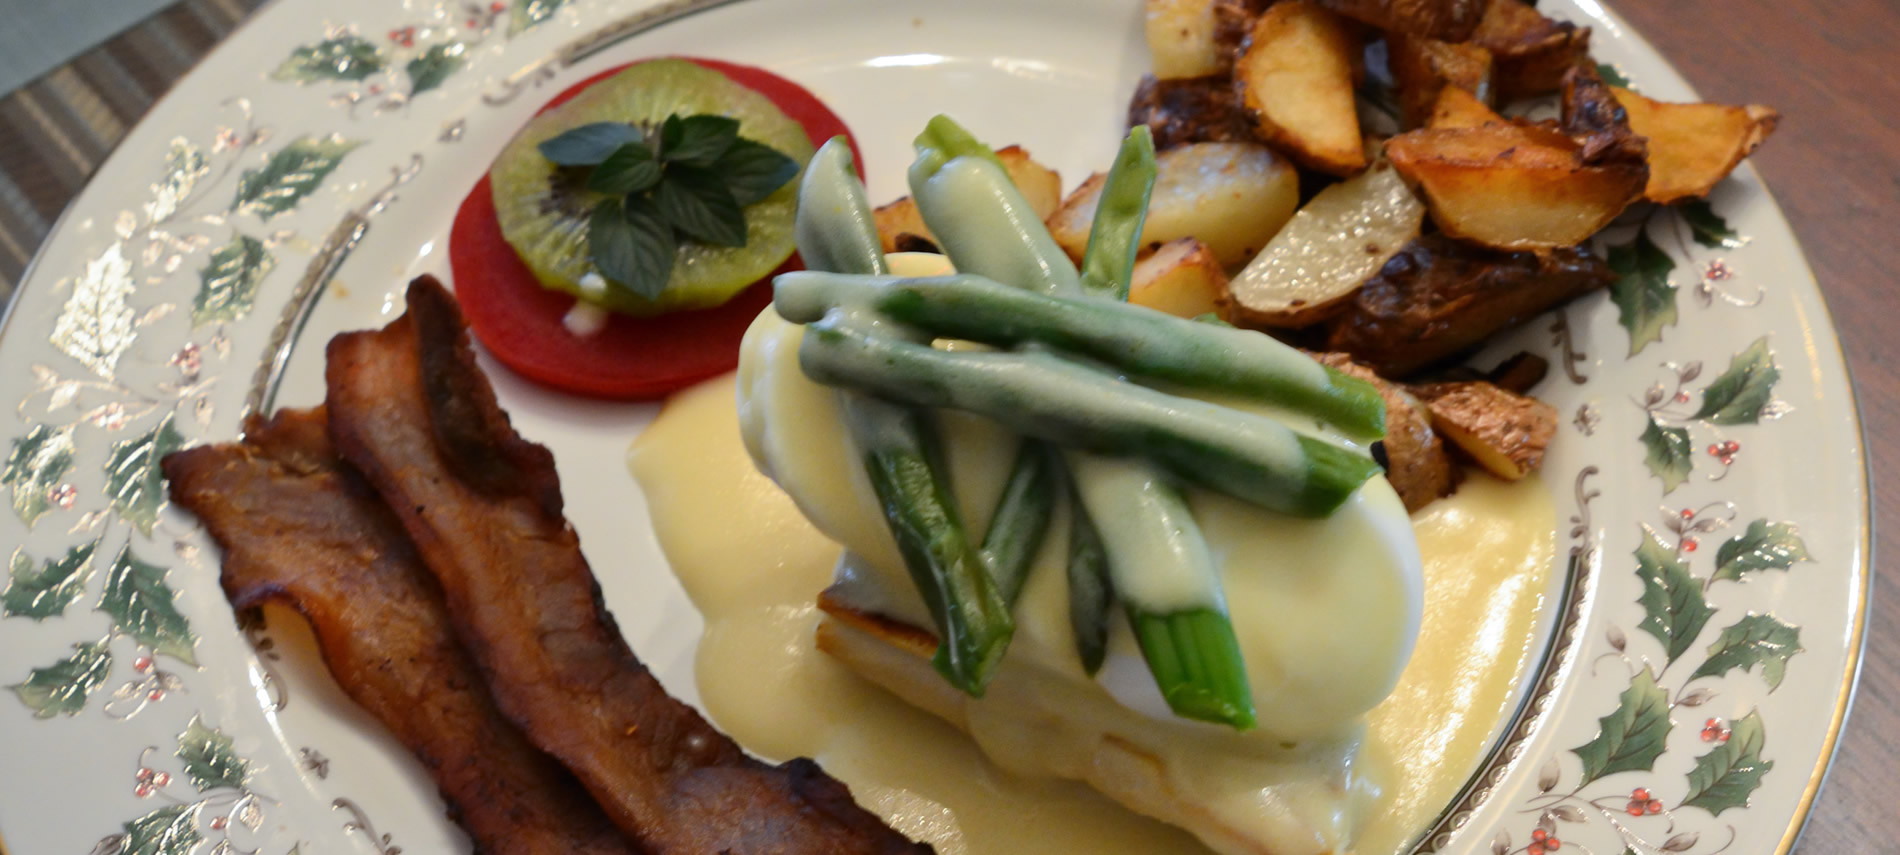 Cream plate with holly design, bacon, fried potatoes, hard-boiled egg with asparagus and cream sauce.